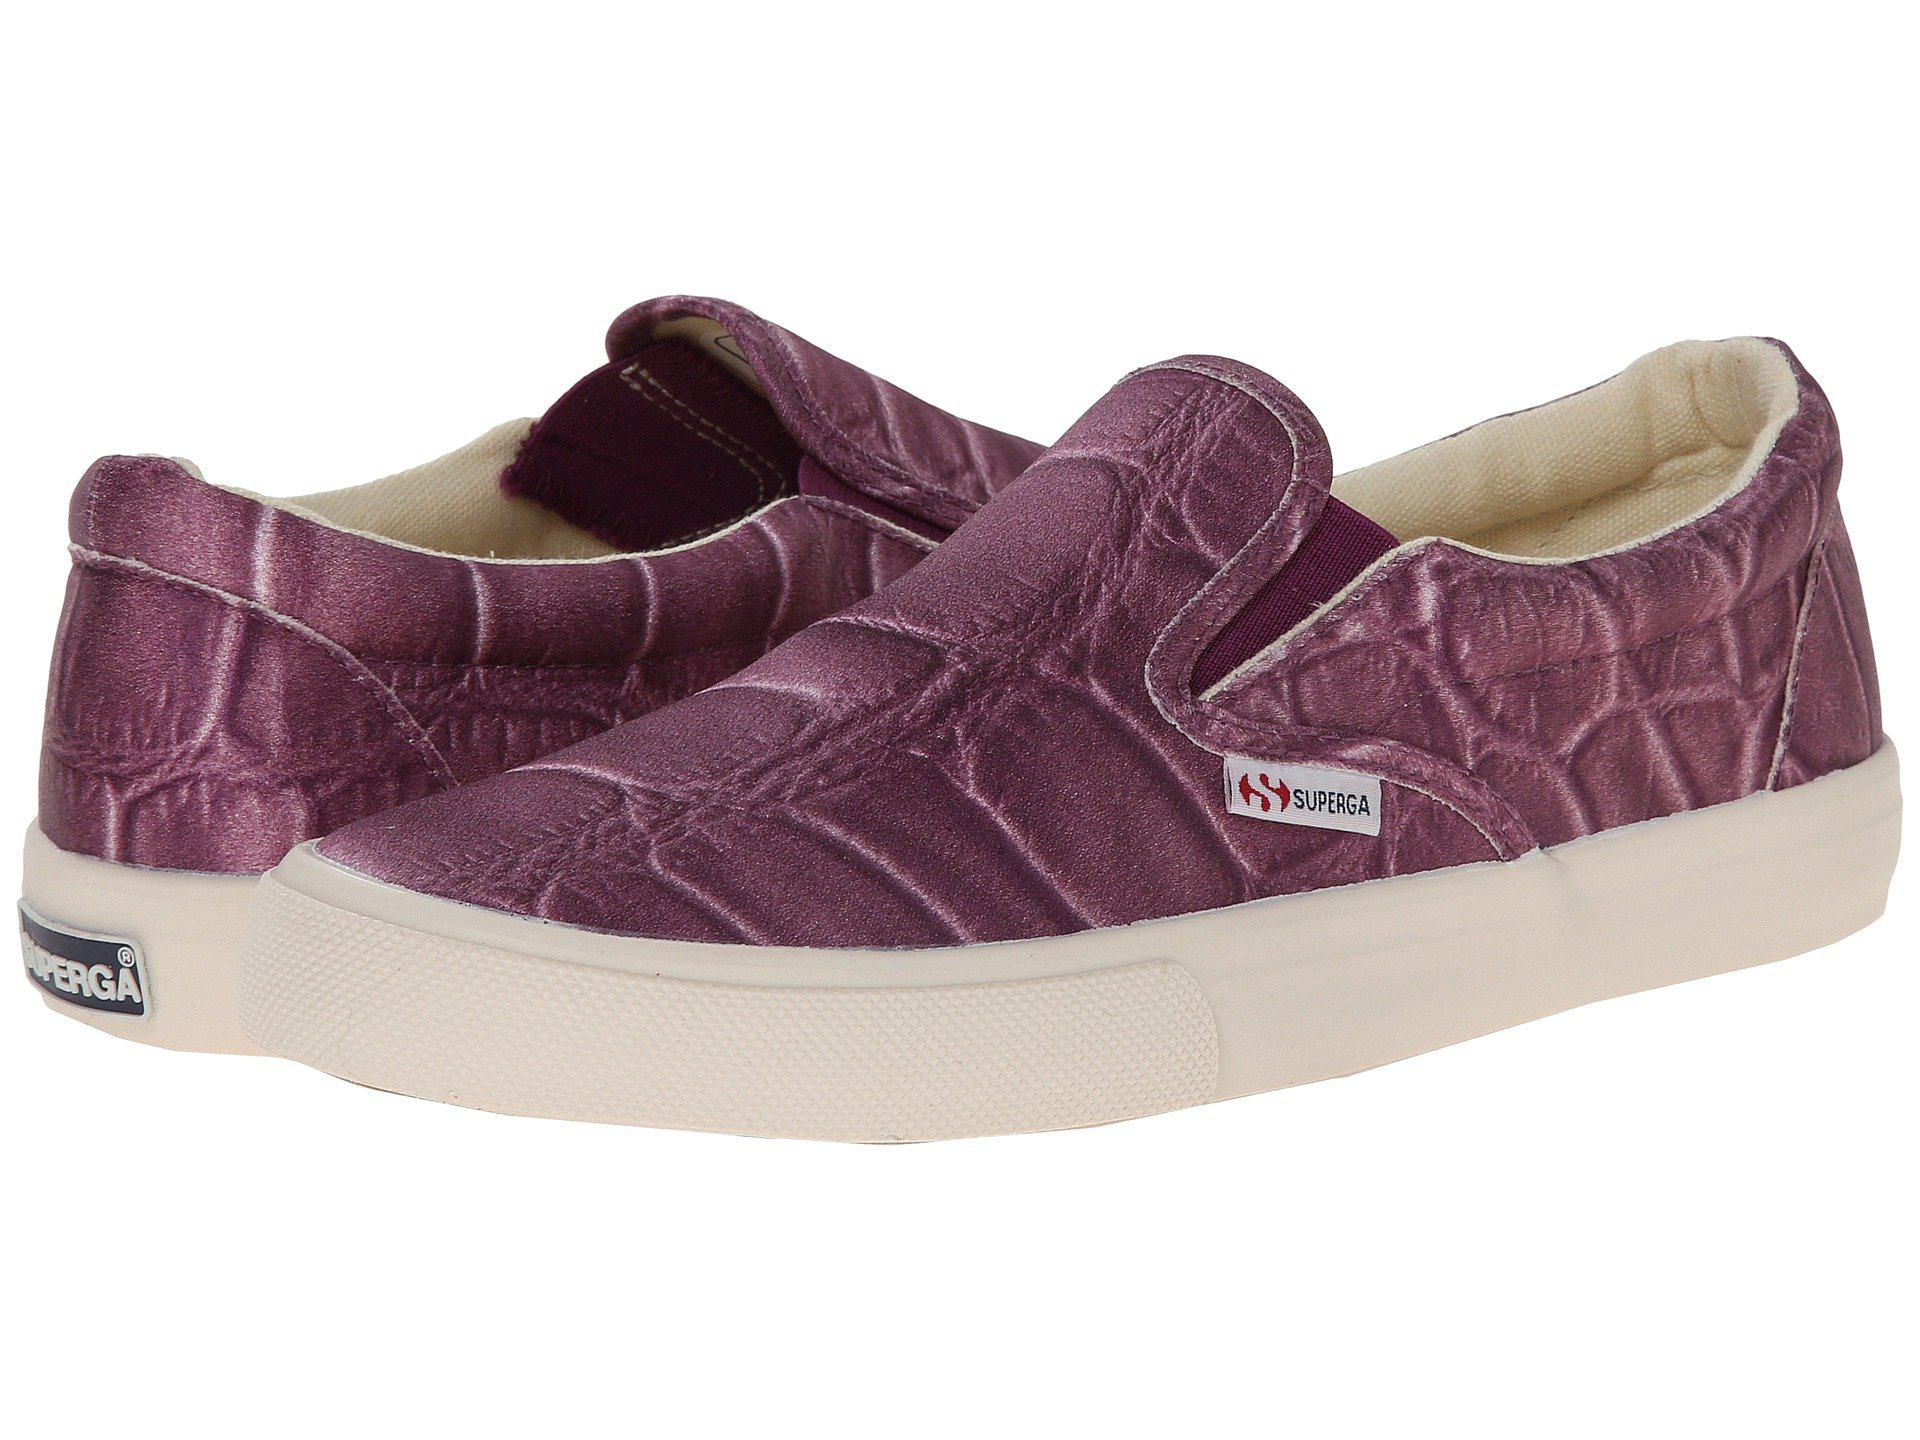 Womens Shoes Superga 2311 Fabricsilkcoccow Plum